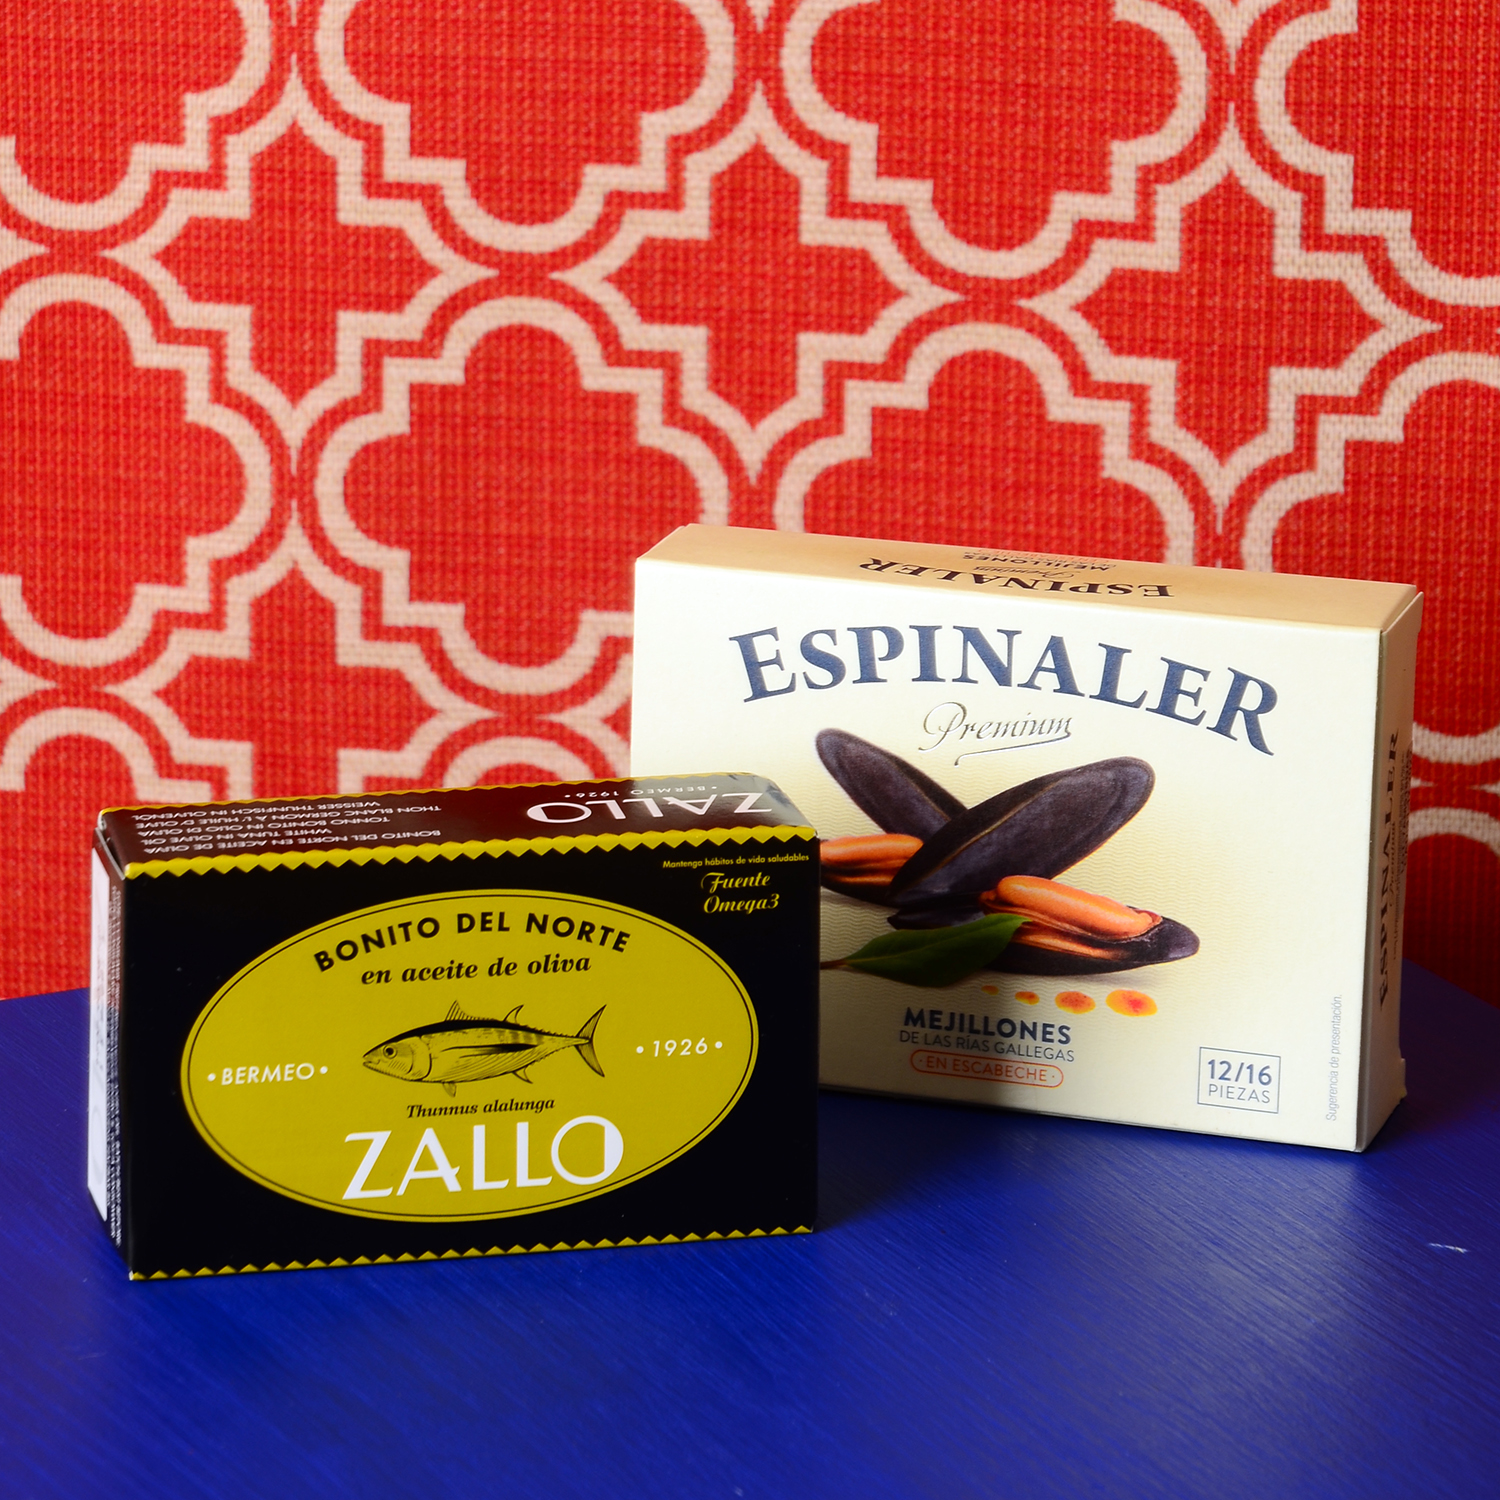 Spanish Duo   £12.90  Diverse and tasty, these premium tins are a match made in heaven for the Spanish food connoisseur. The Espinaler mussels are selected and hand-prepared by family run Galician canneries. A source of proteins and minerals, mussels are great for those who hit the gym a few times a week.